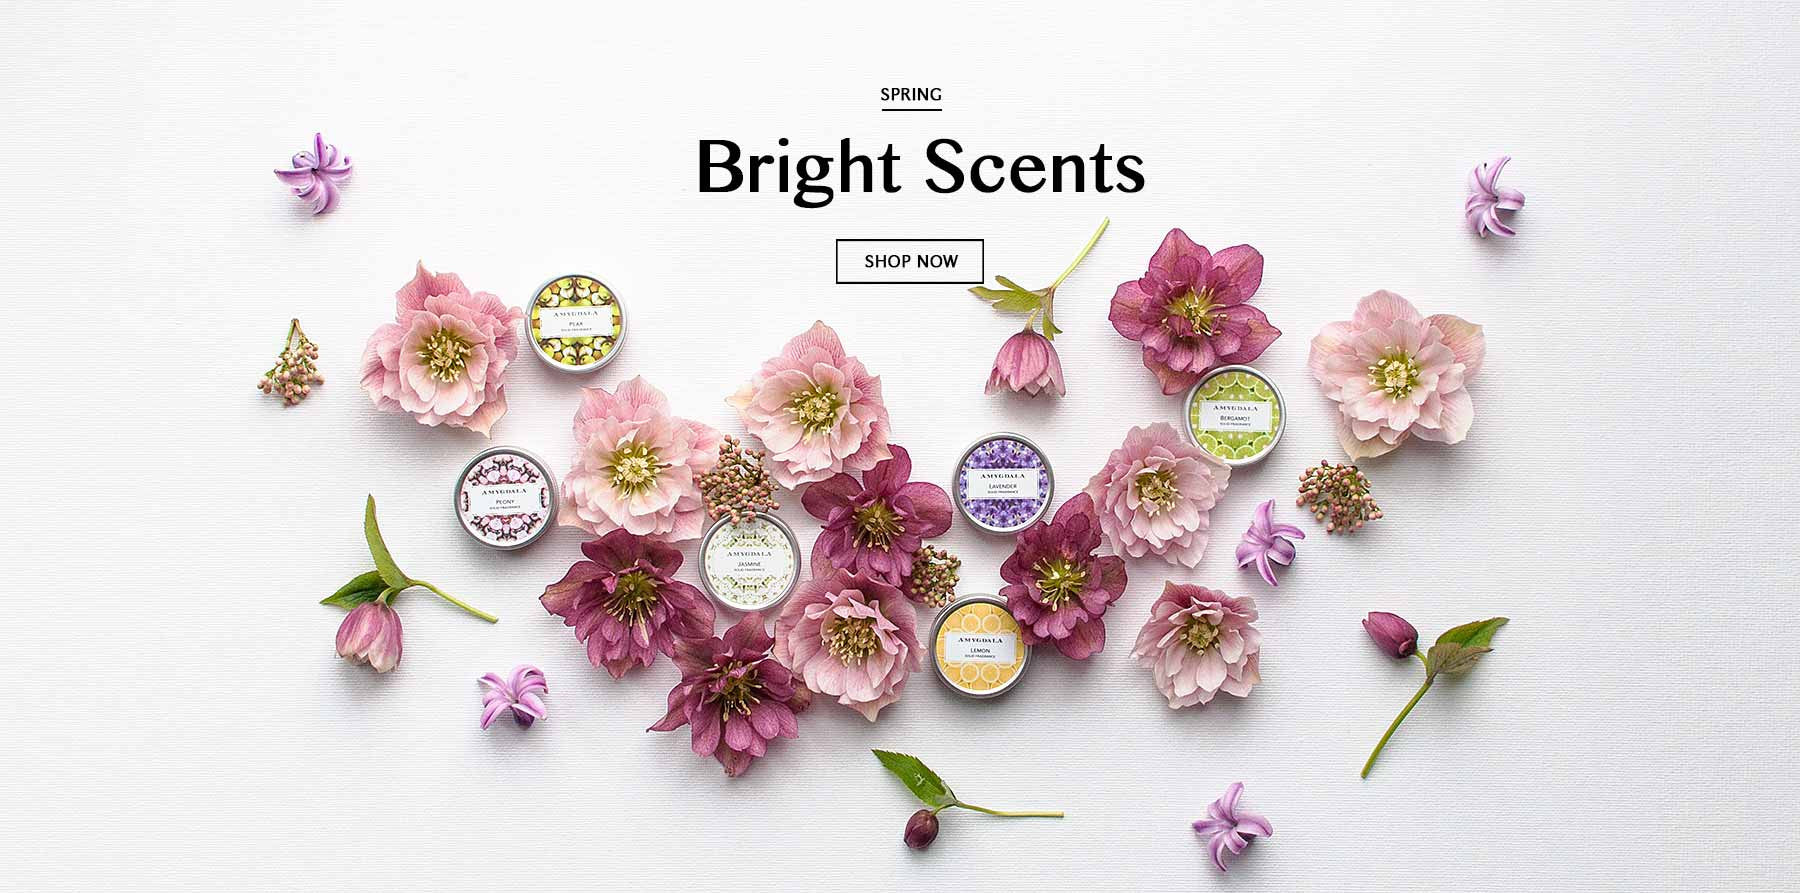 Spring Solid Perfumes from Amygdala Beauty